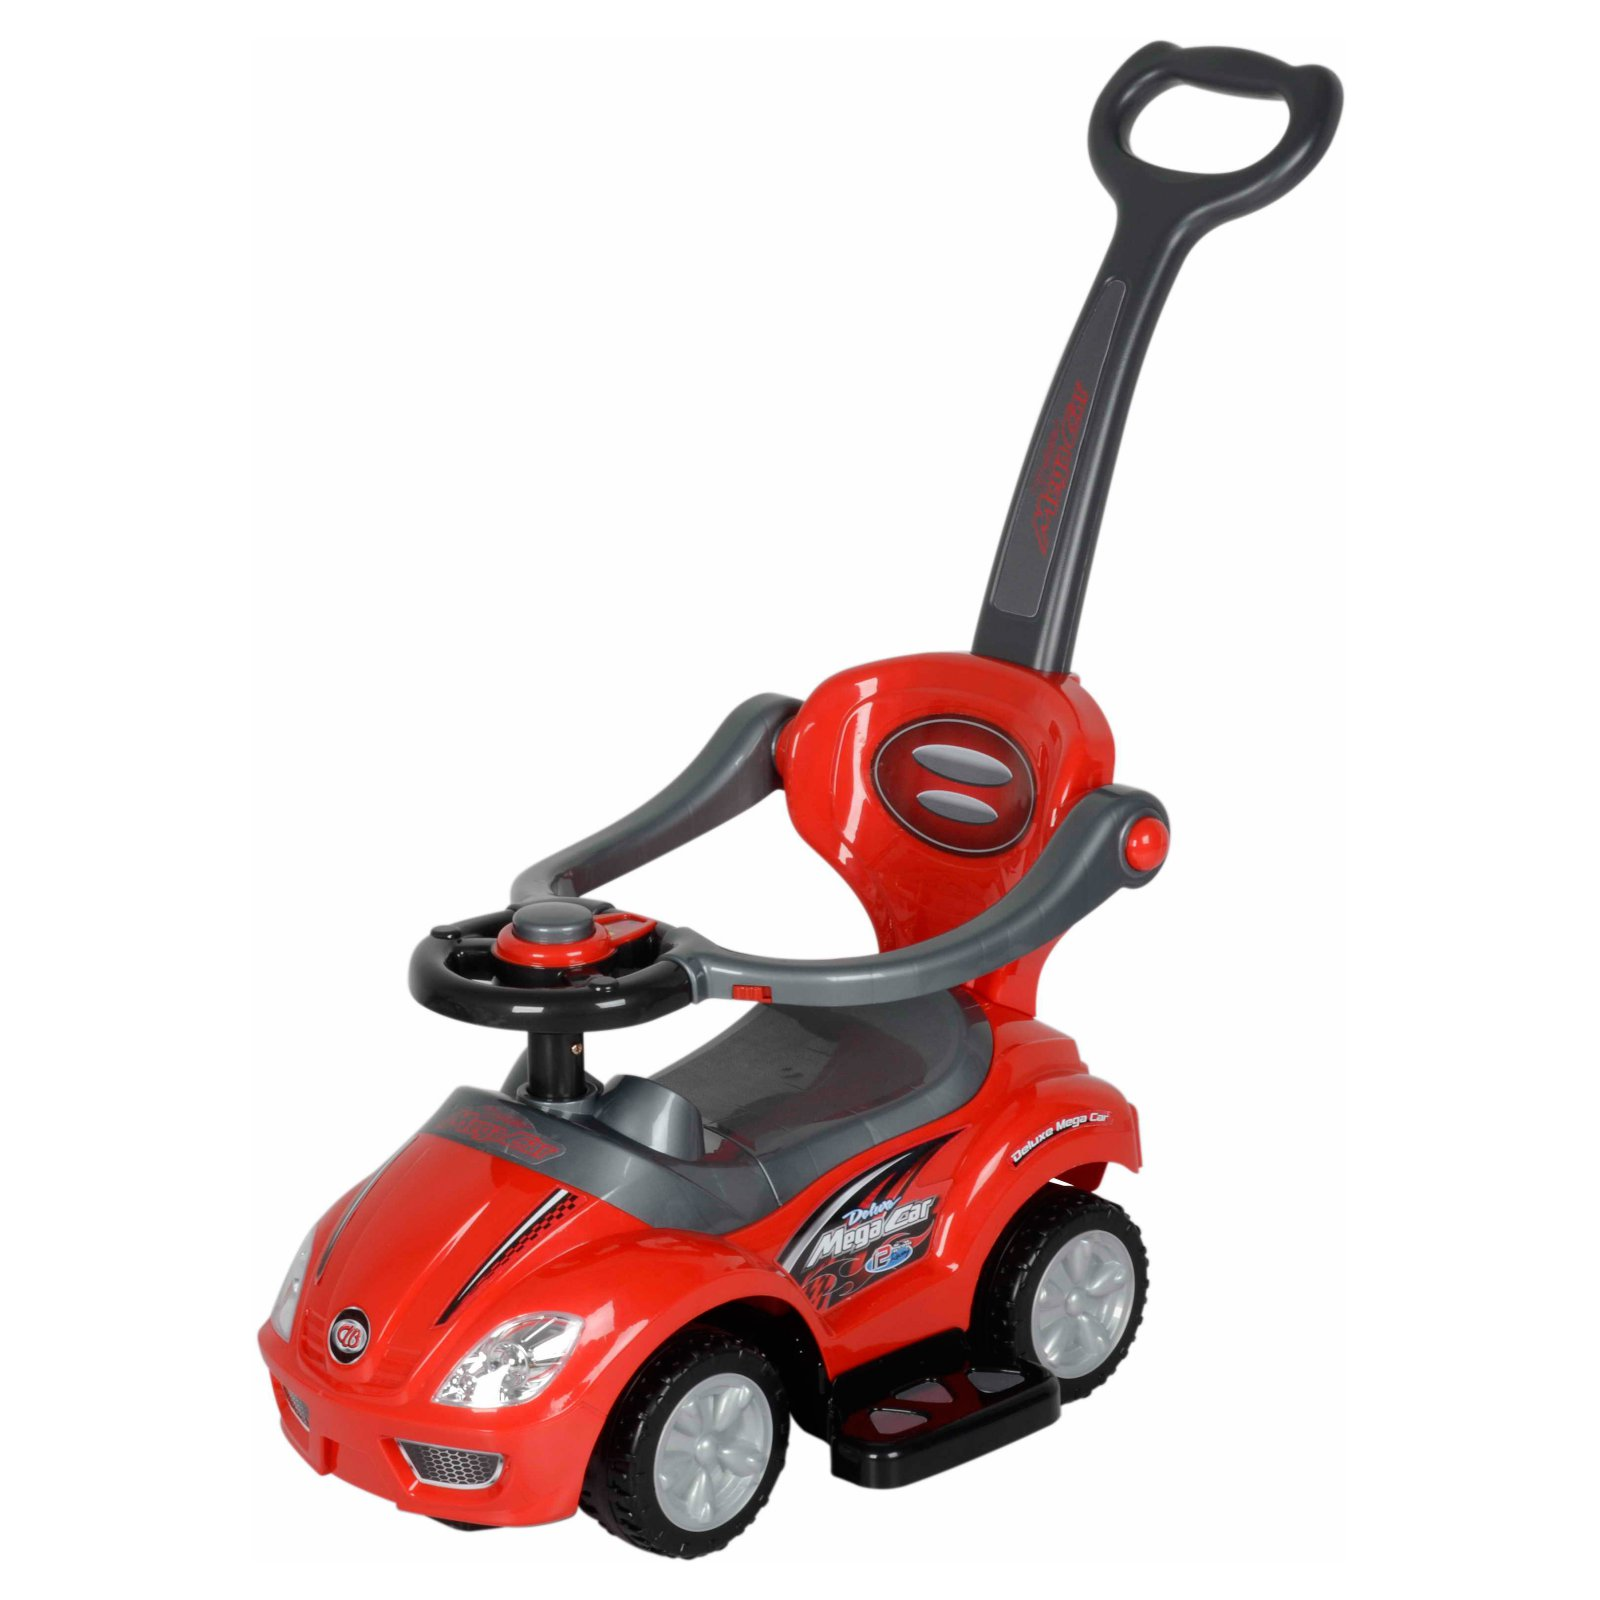 Best Ride On Cars 3 in 1 Riding Push Toy - Red